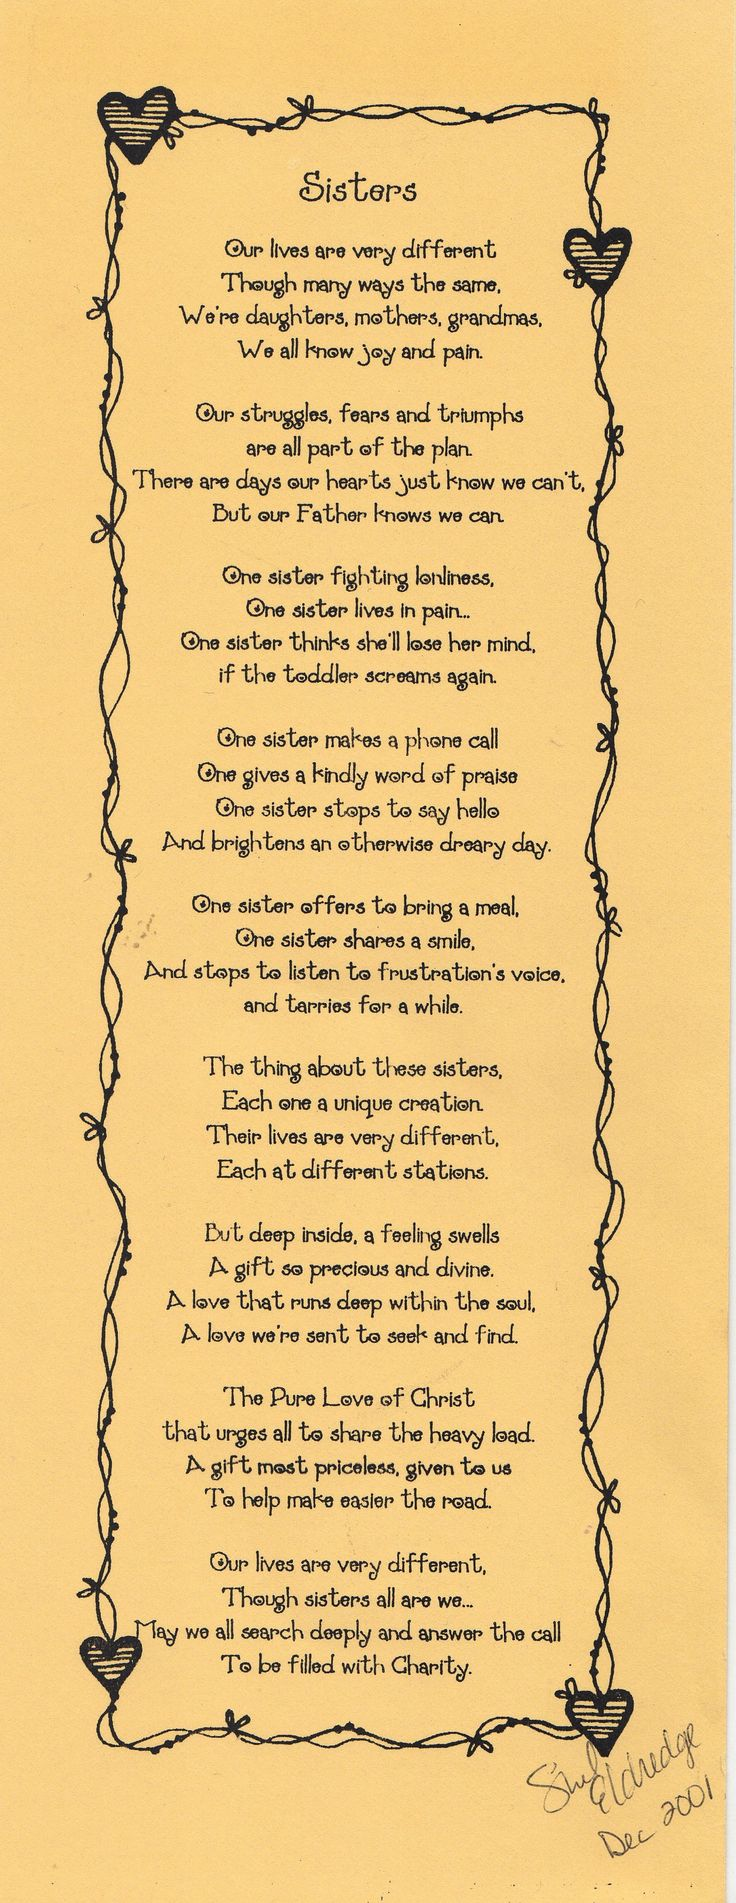 Good poem for Relief Society activity about serving each other.